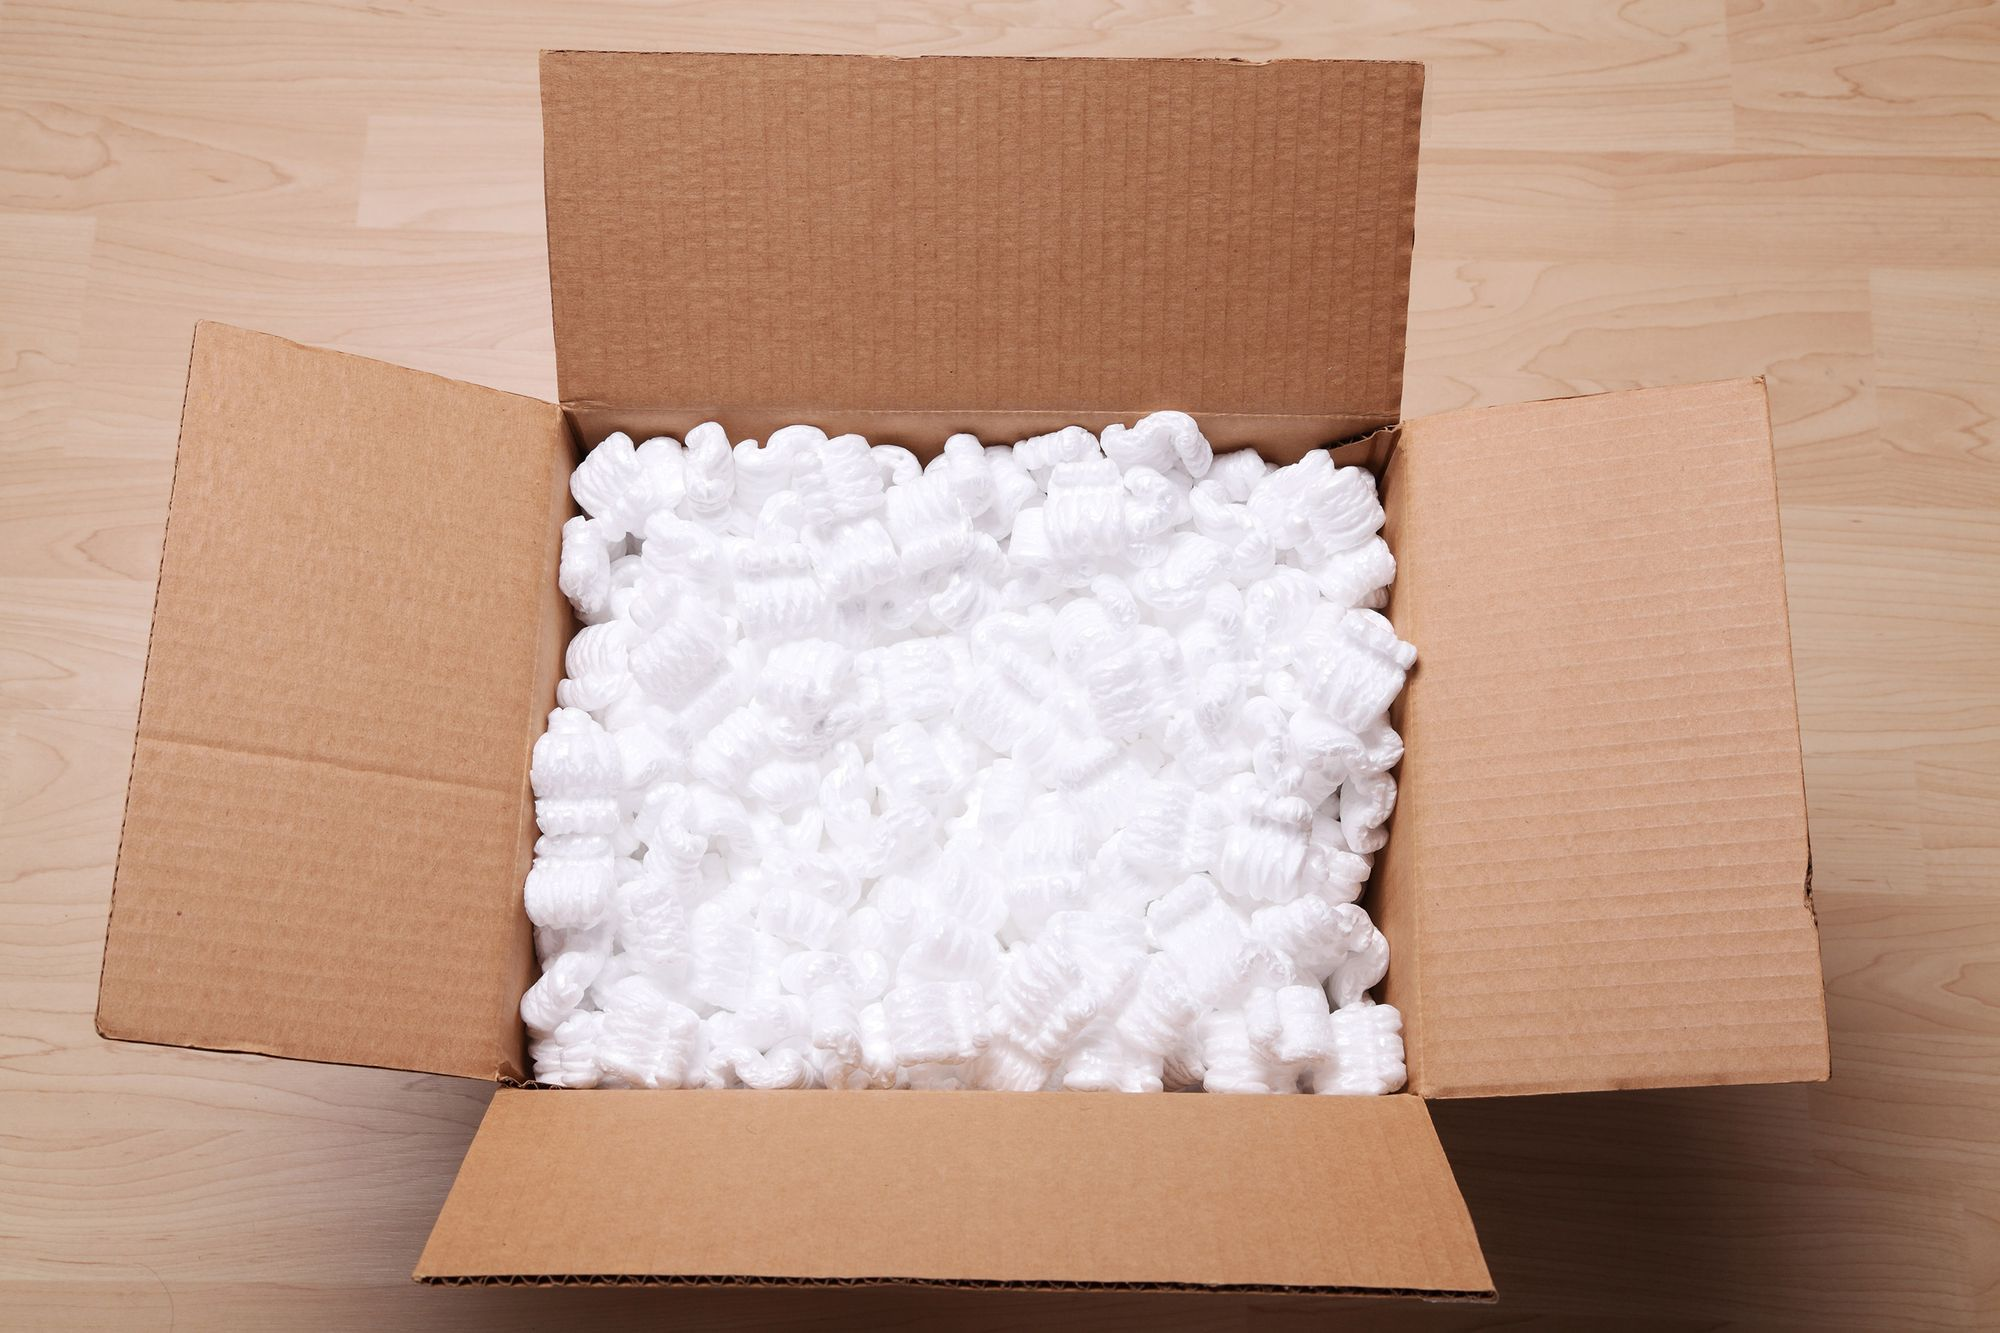 Dunnage packing peanuts